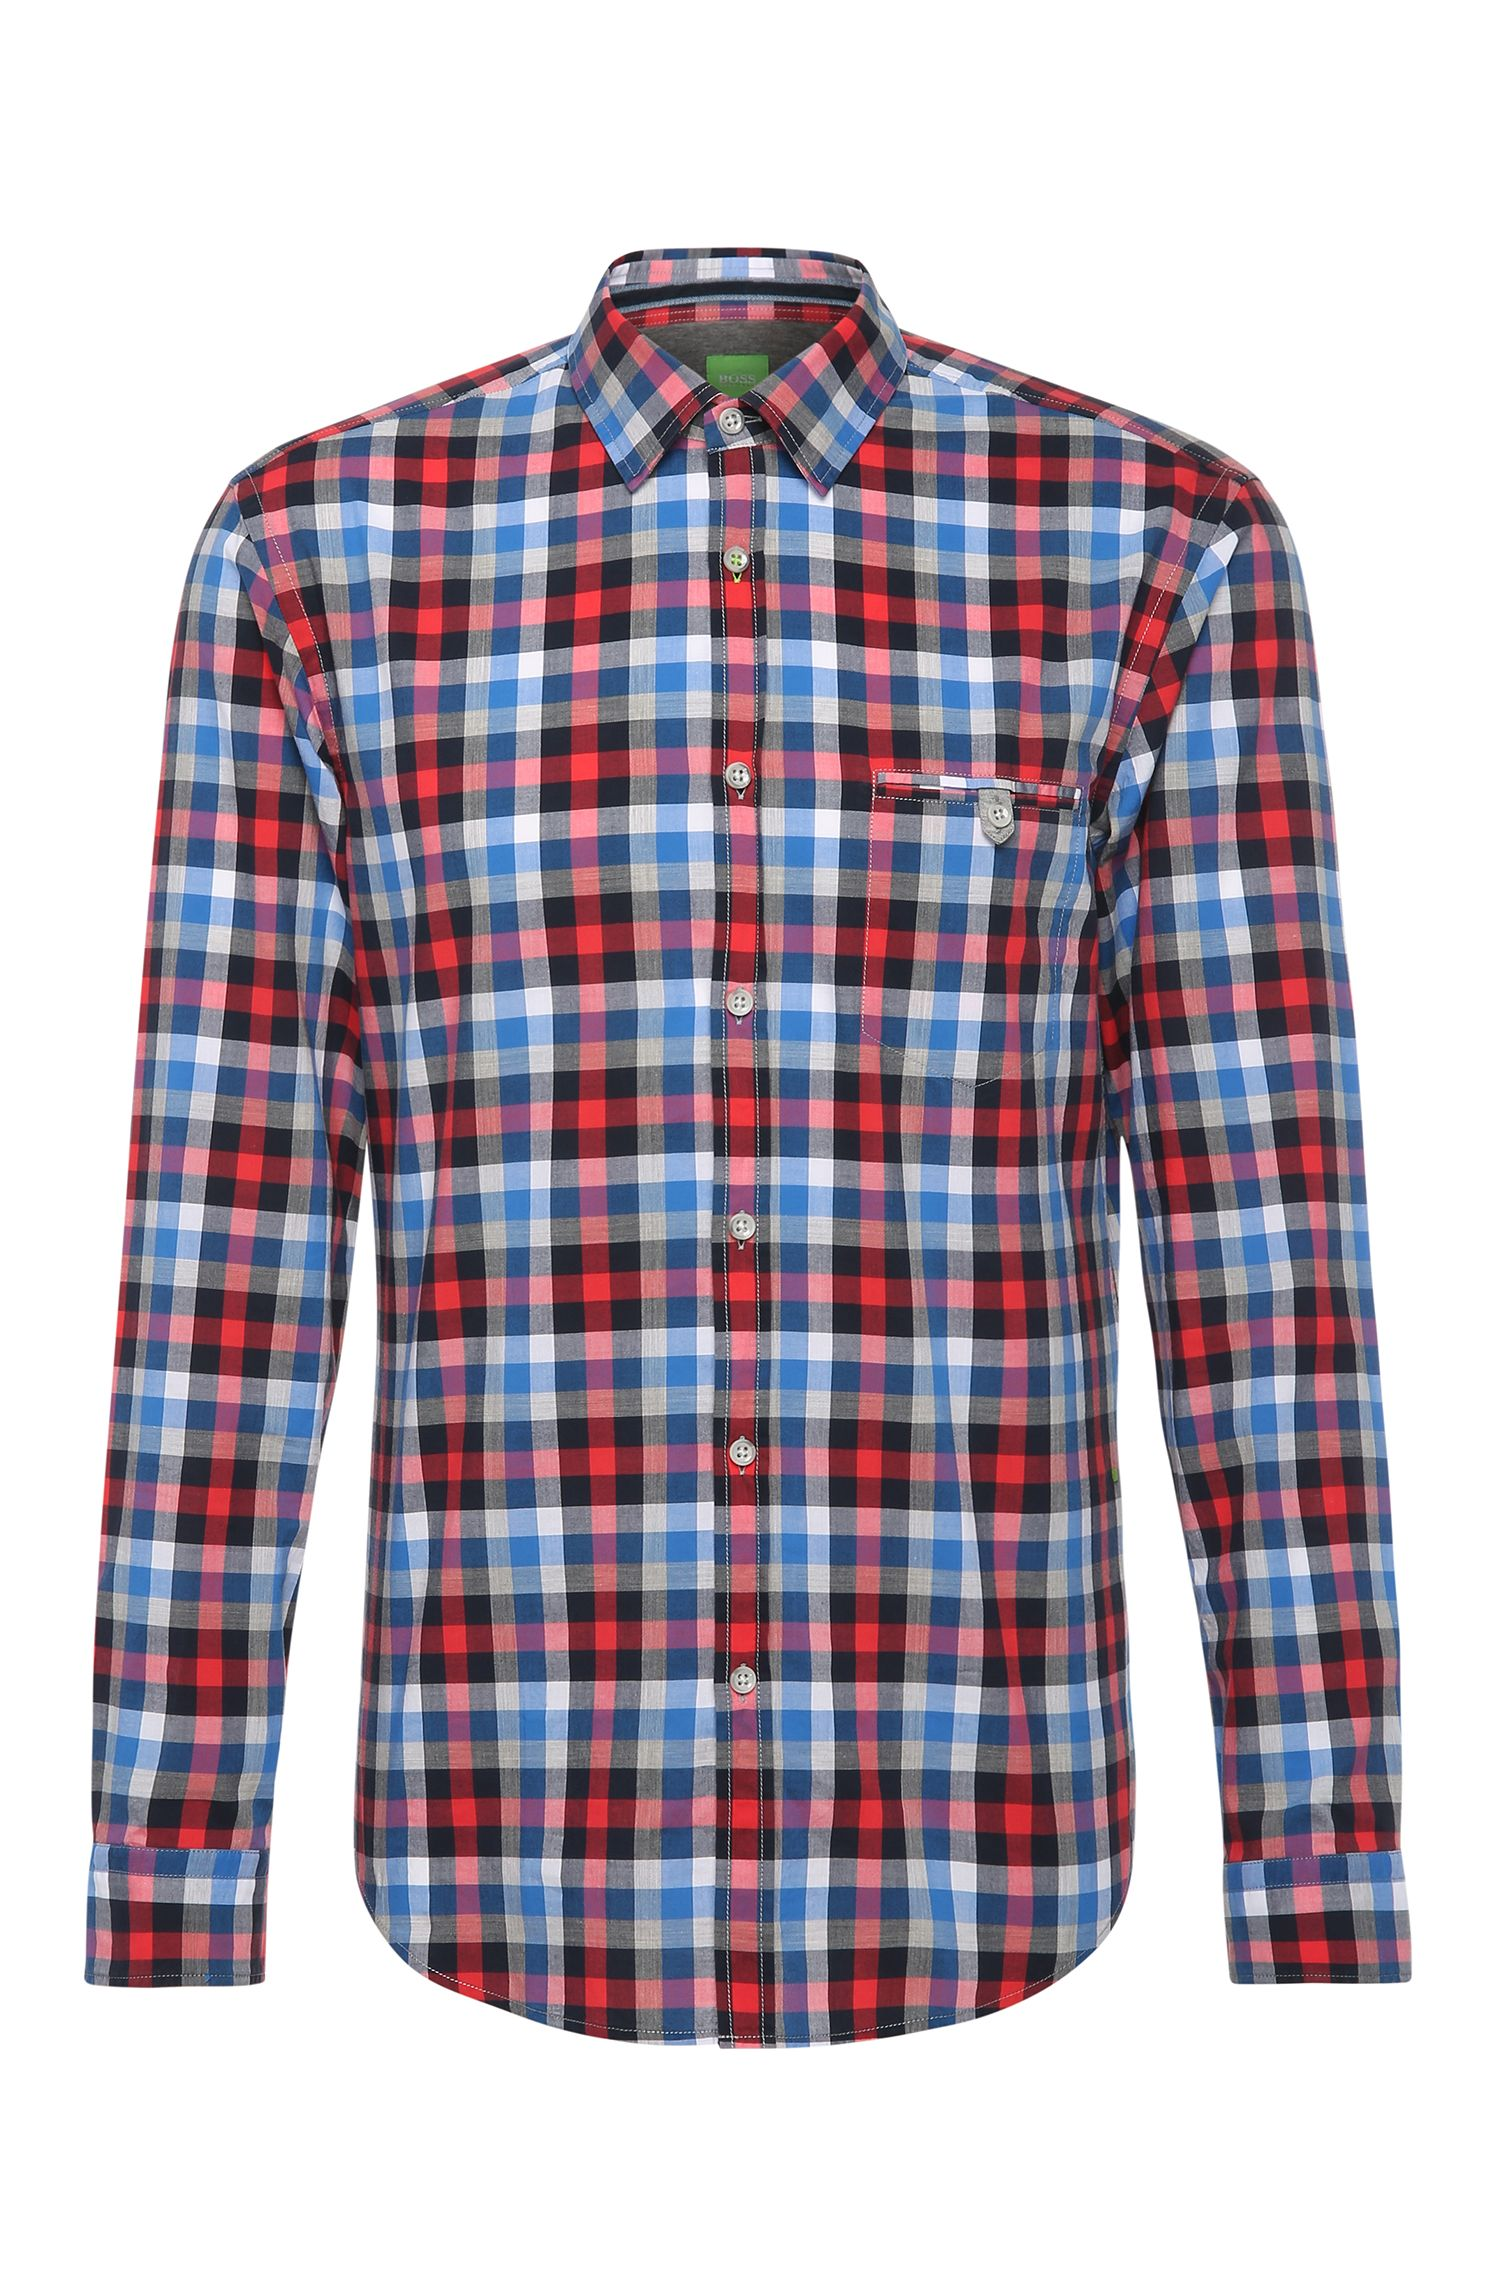 Cotton Button Down Shirt, Slim Fit | Blumas